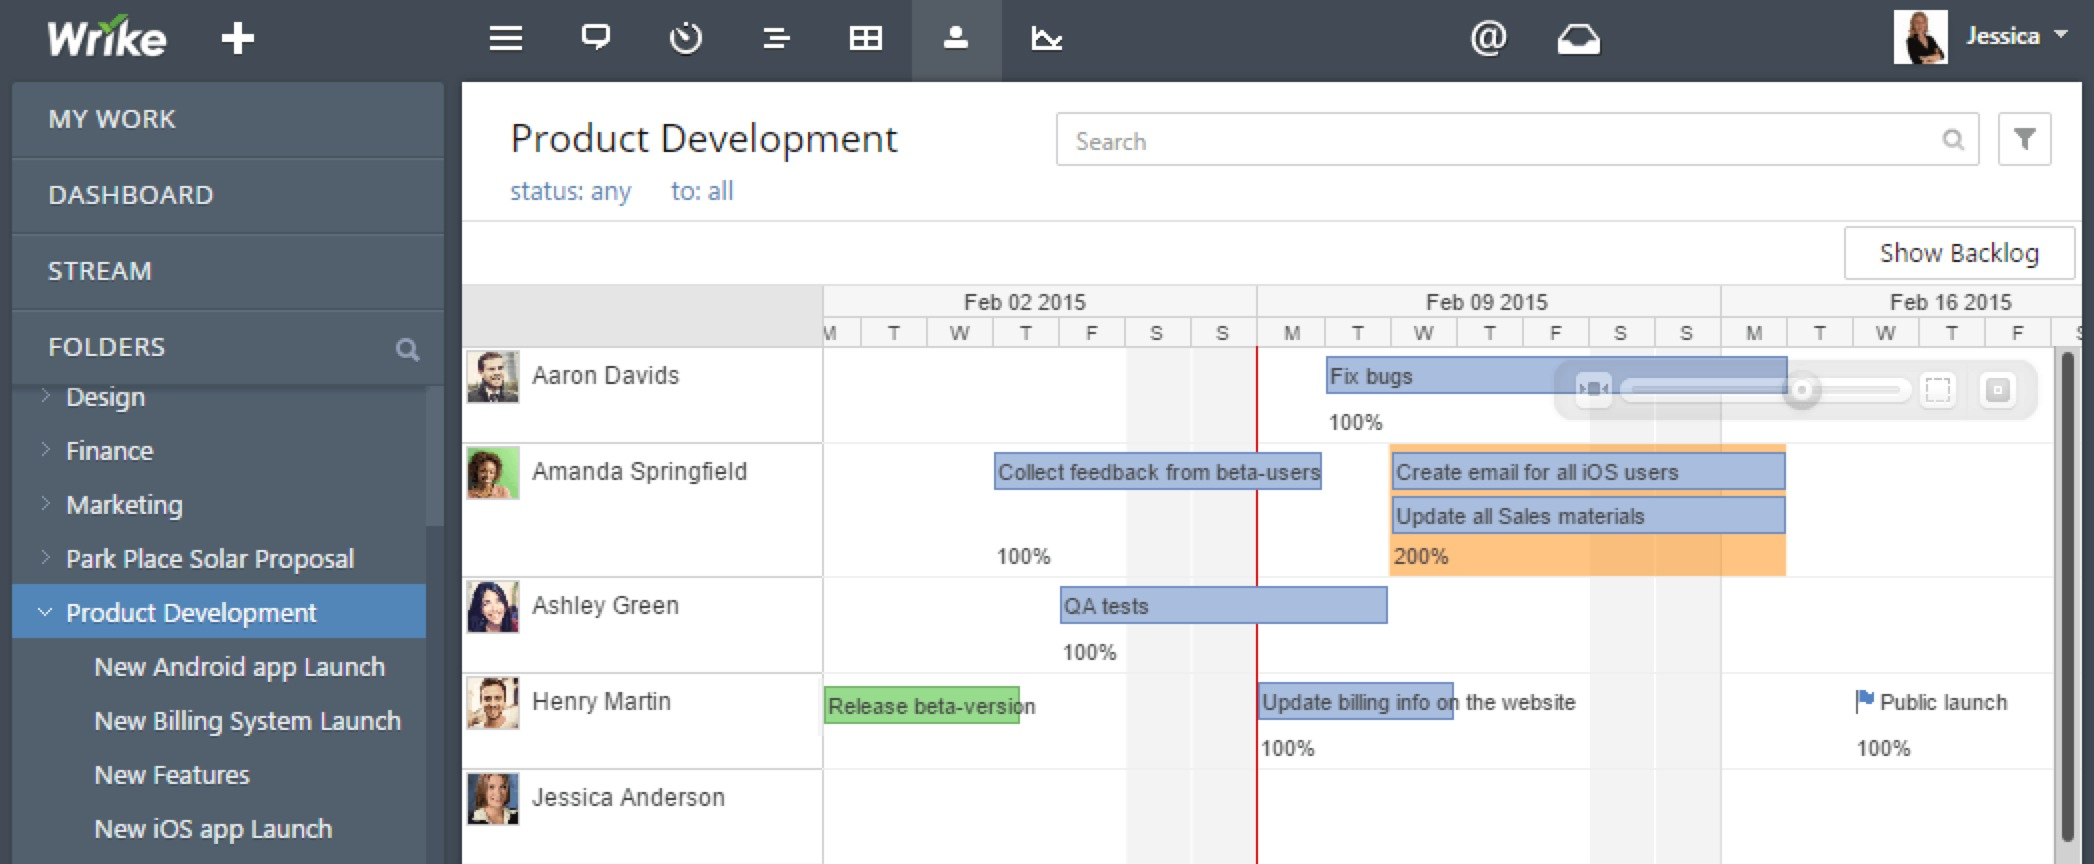 Wrike-Project-Management-Tool